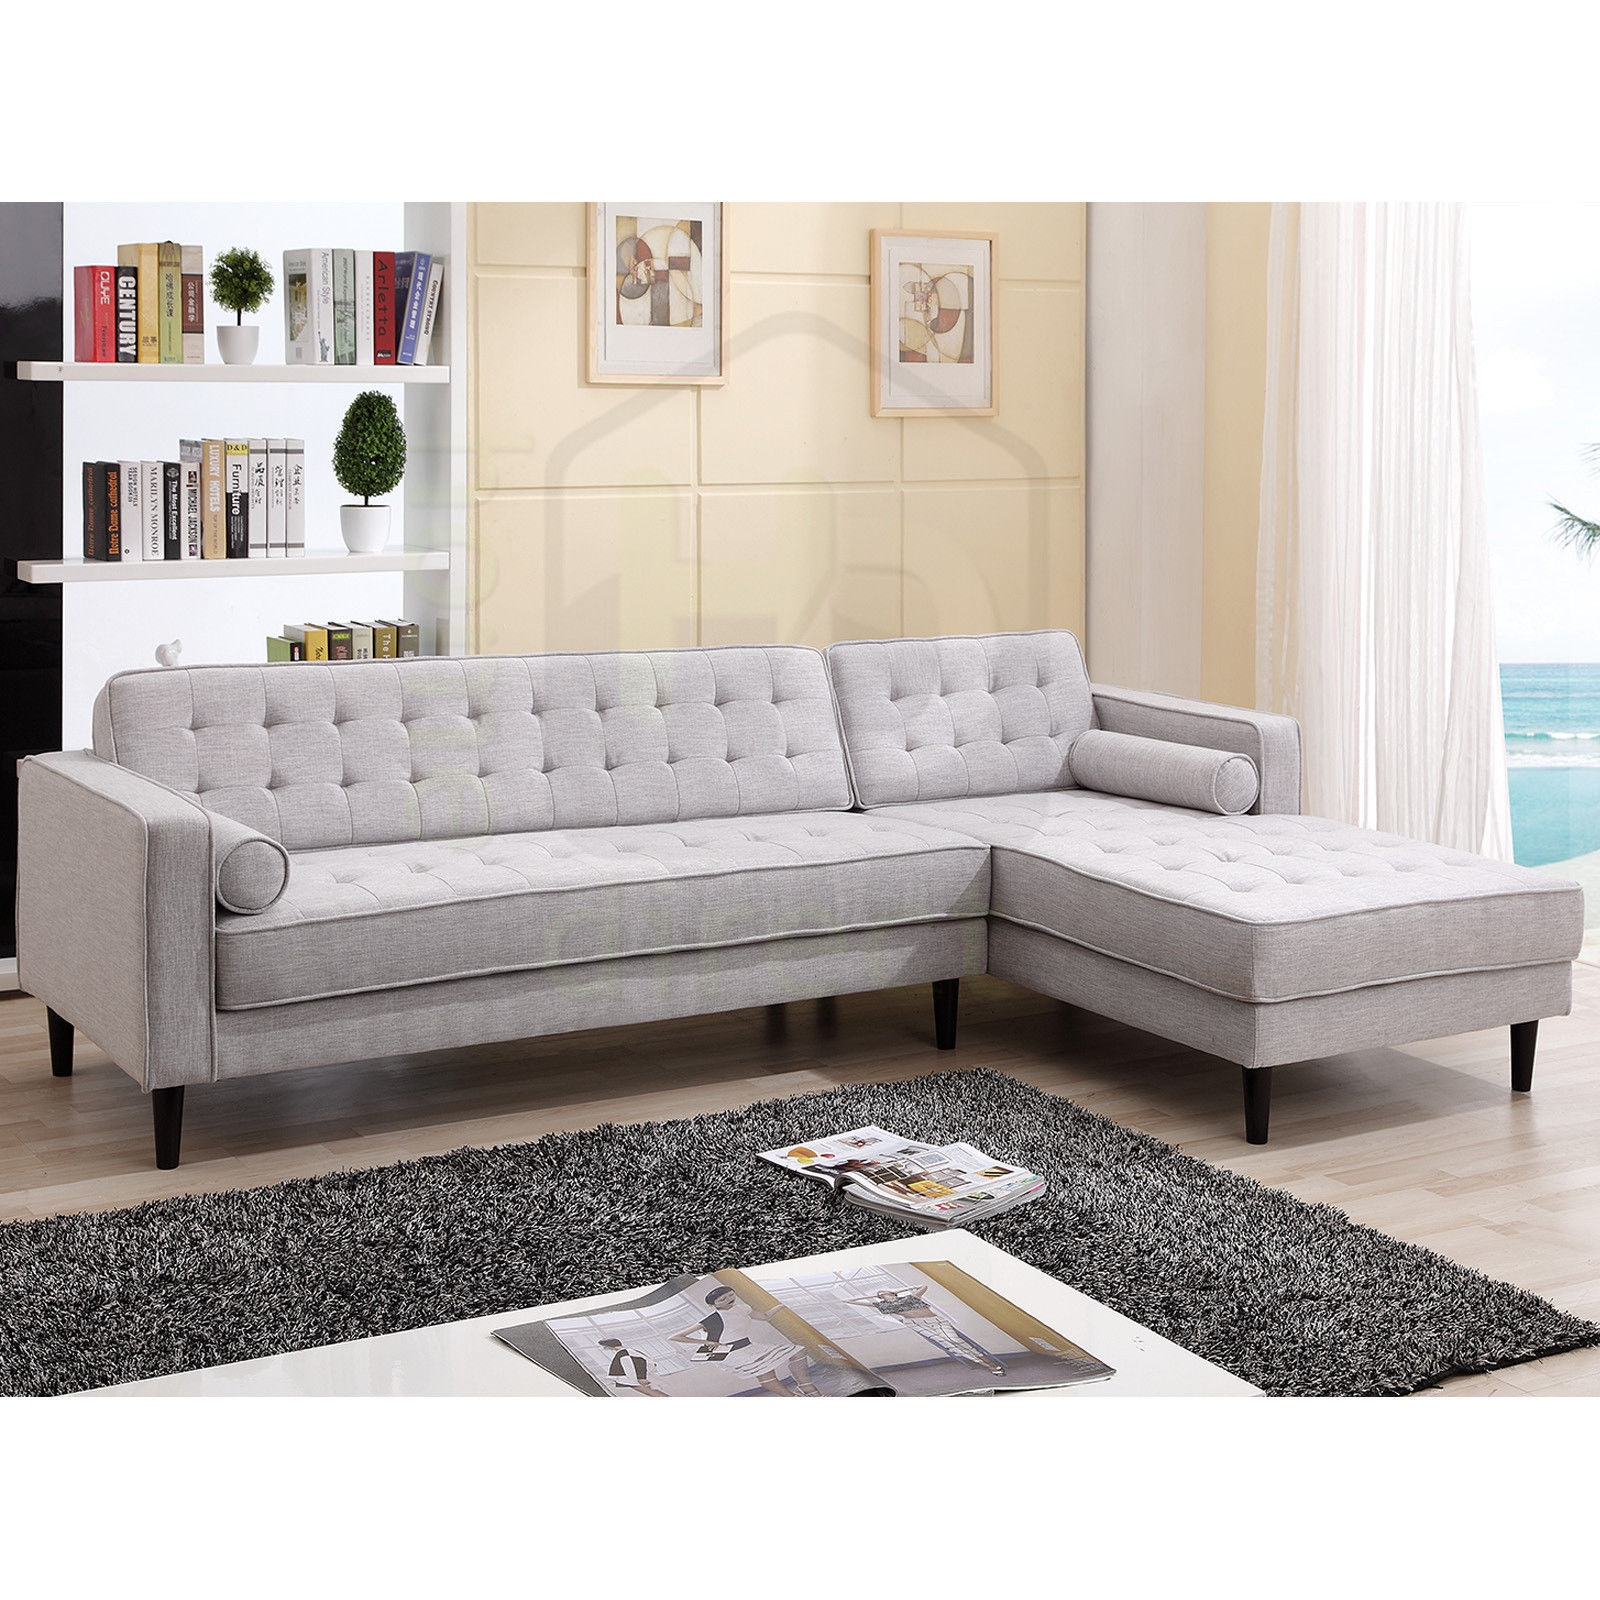 Fabric L Shape Scandinavian Retro Danish Modern Lounge Suite Sofa